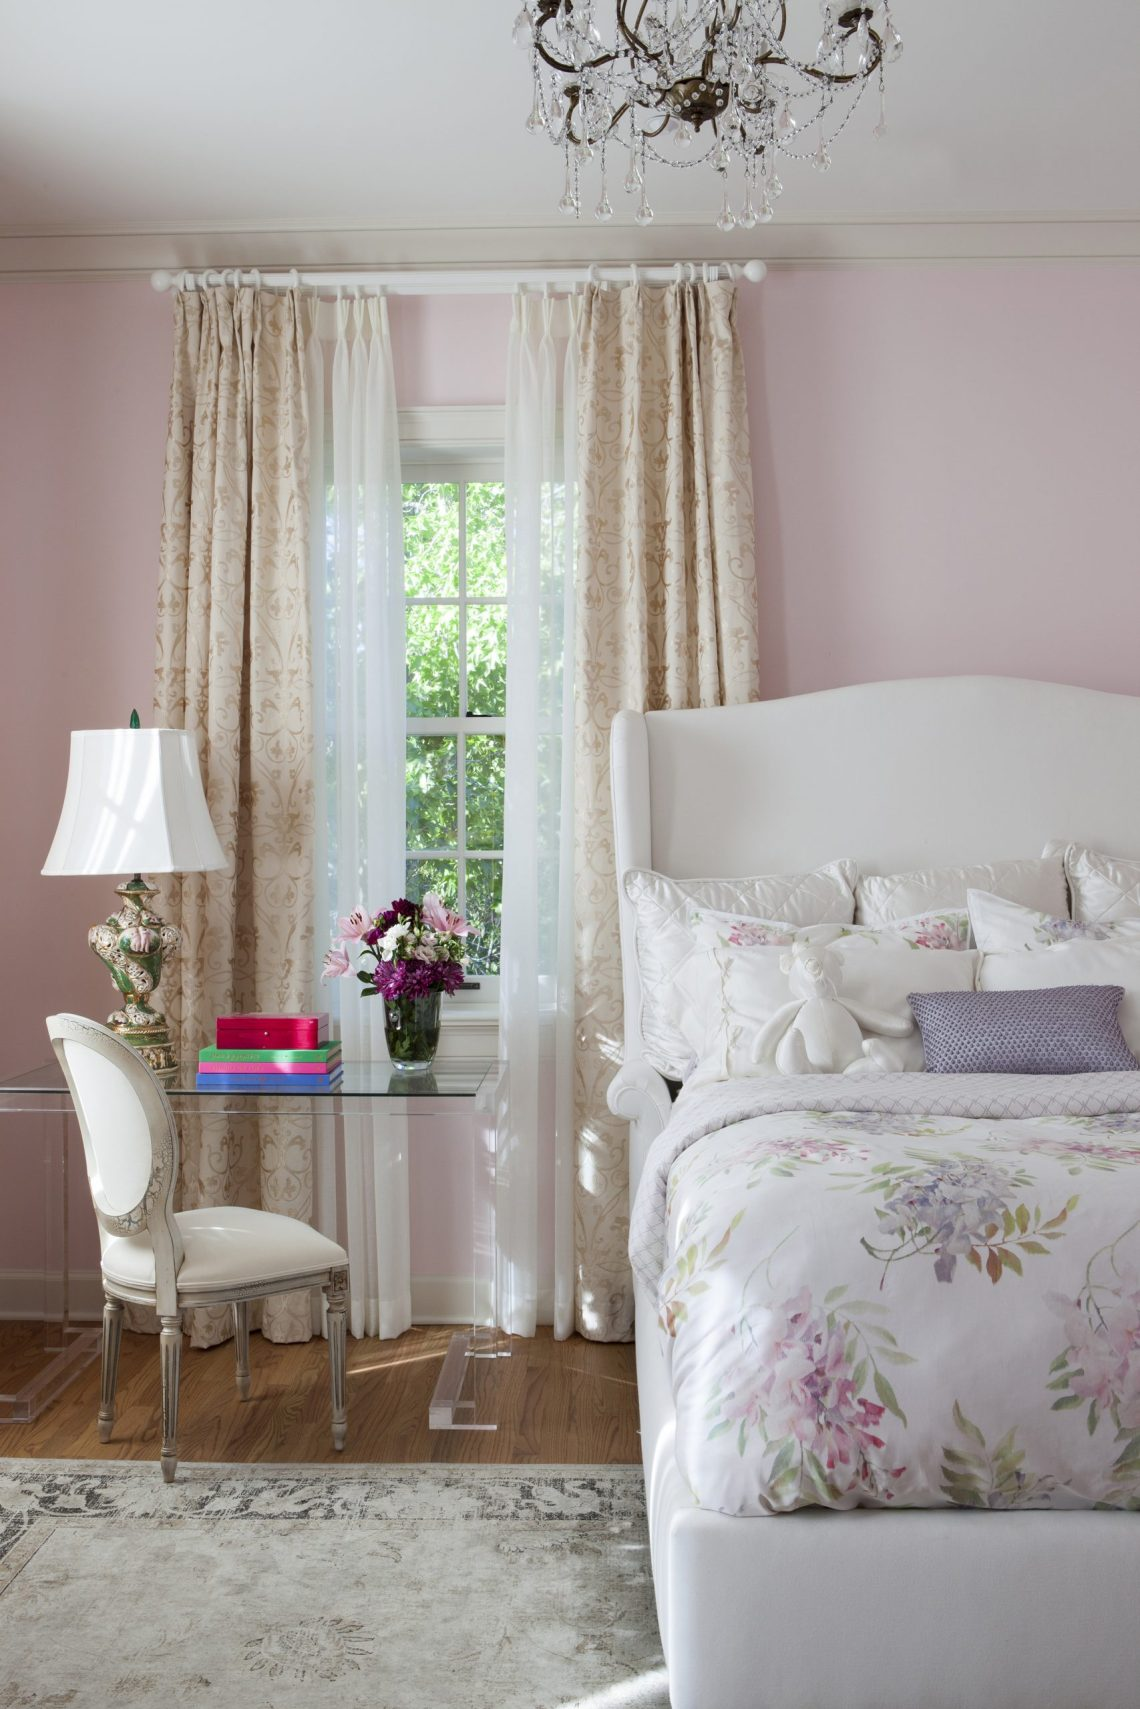 Bedrooms to Blush Over: How to Design a Romantic Bedroom ...